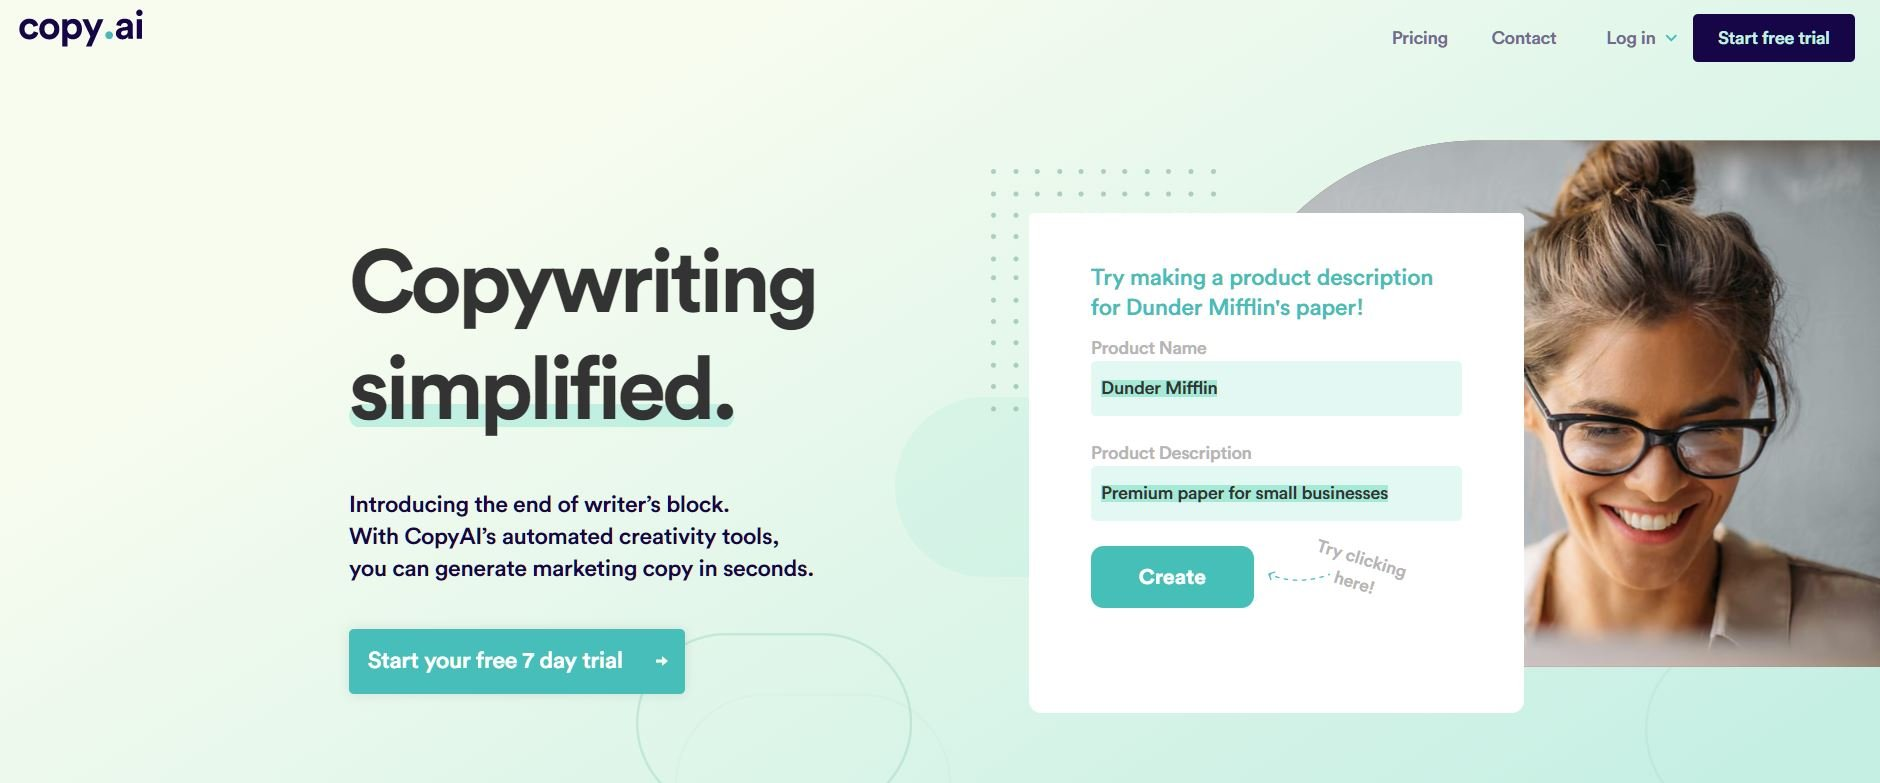 how to write great blog articles - copy.ai tips